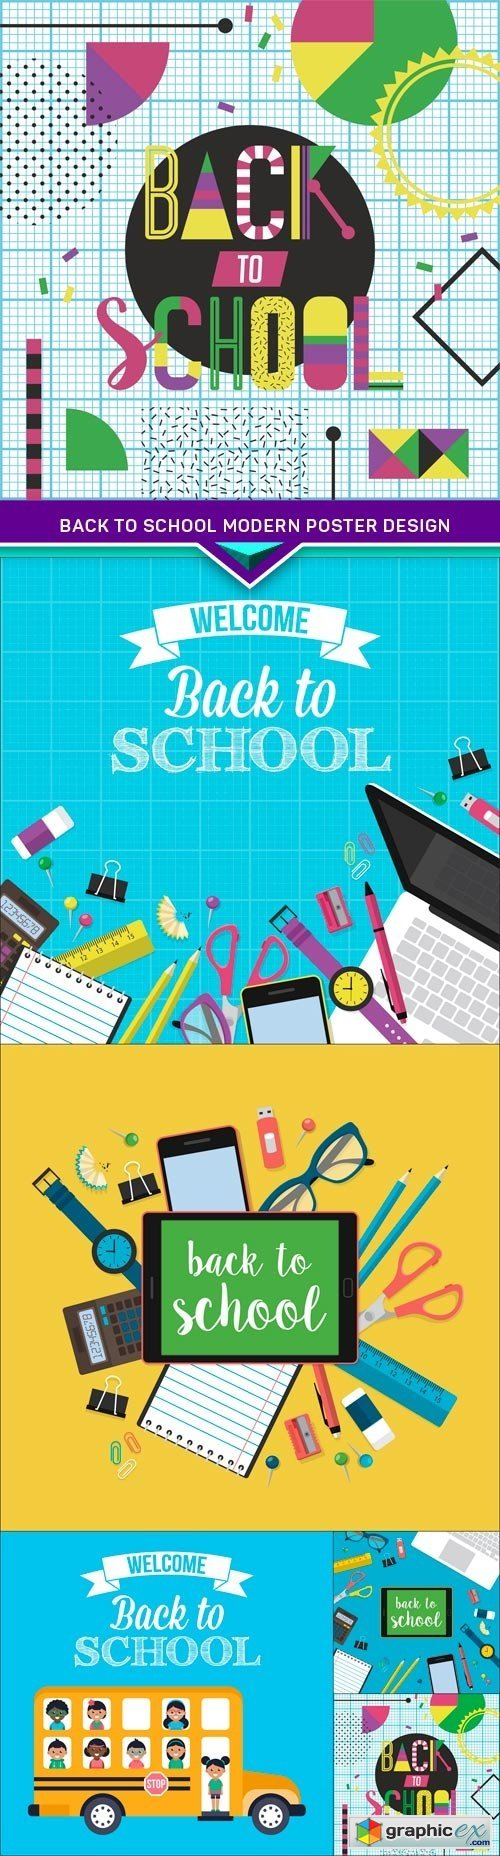 Back to school modern poster design 5X EPS